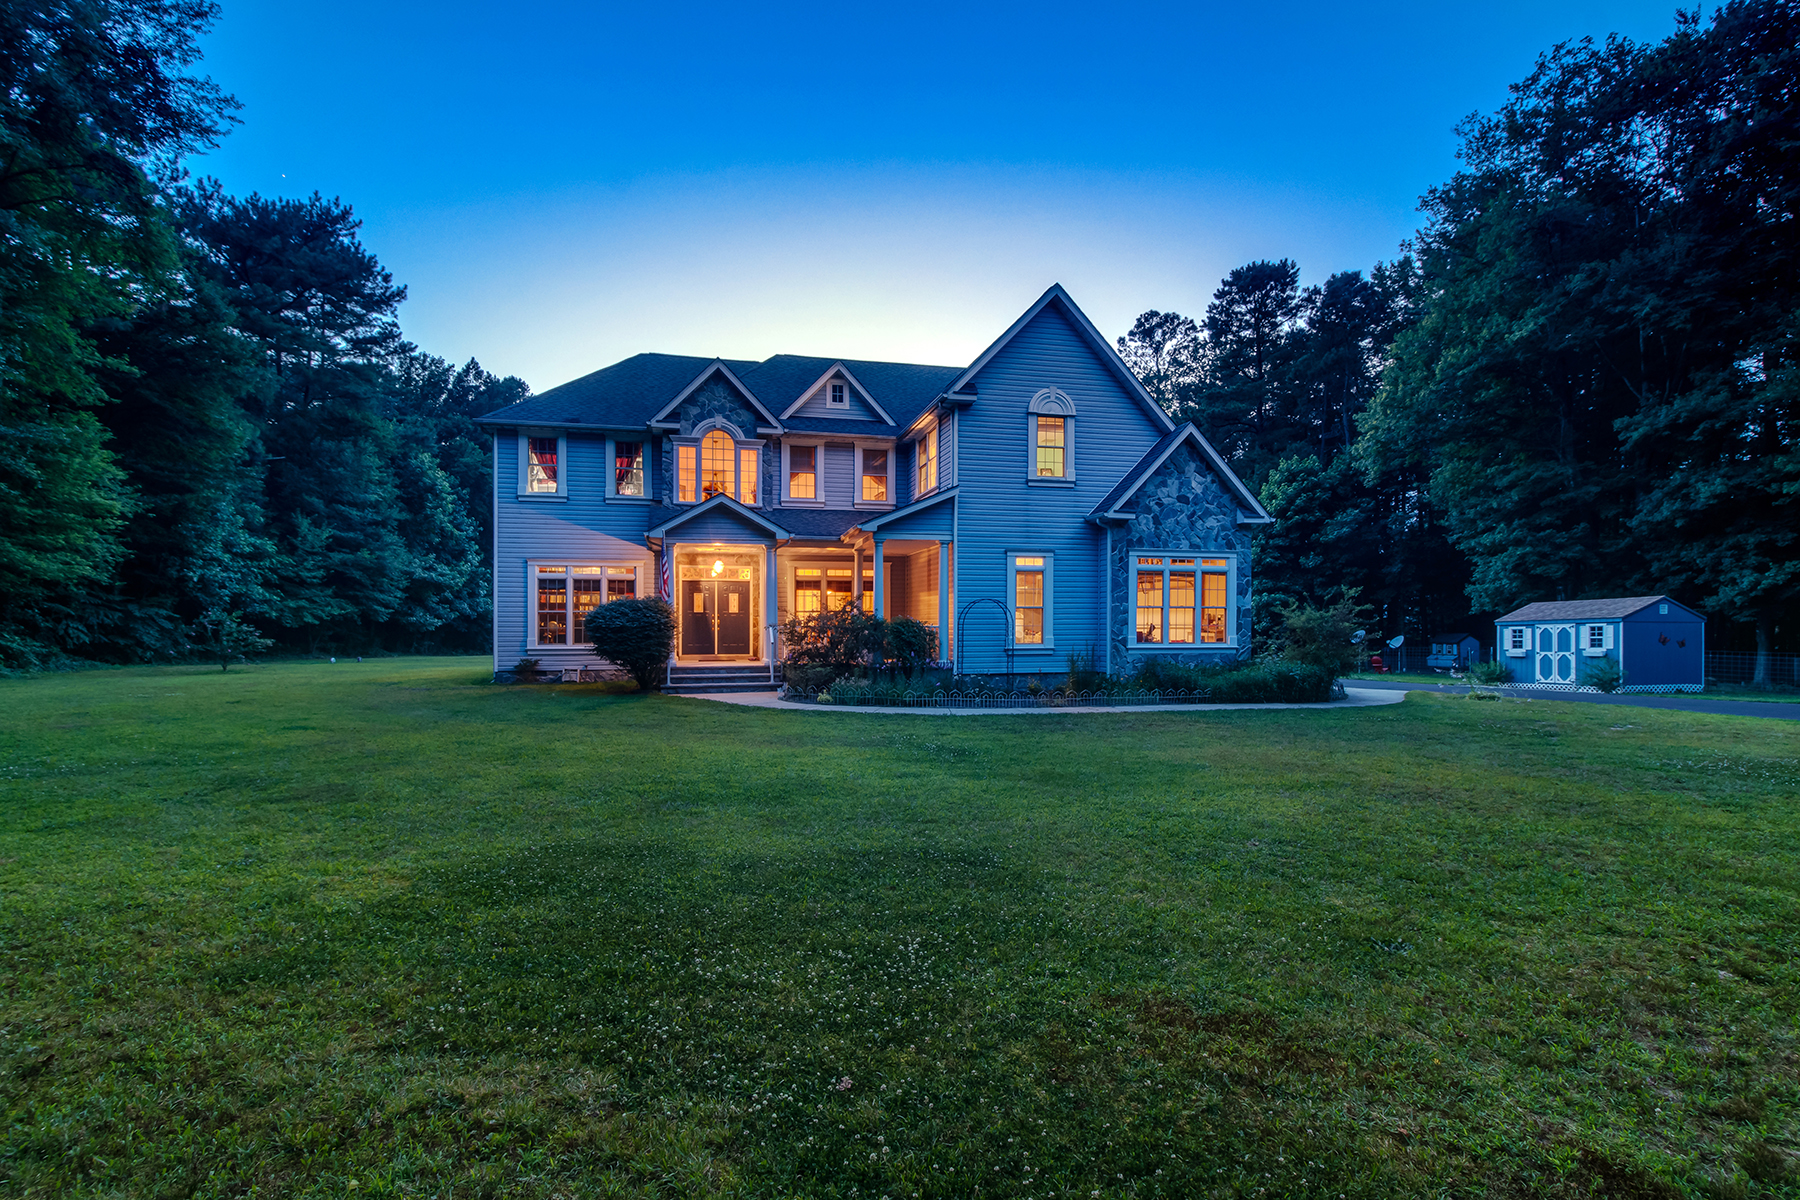 single family homes for Sale at 23383 Arnold Ln , Millsboro, DE 19966 23383 Arnold Ln Millsboro, Delaware 19966 United States